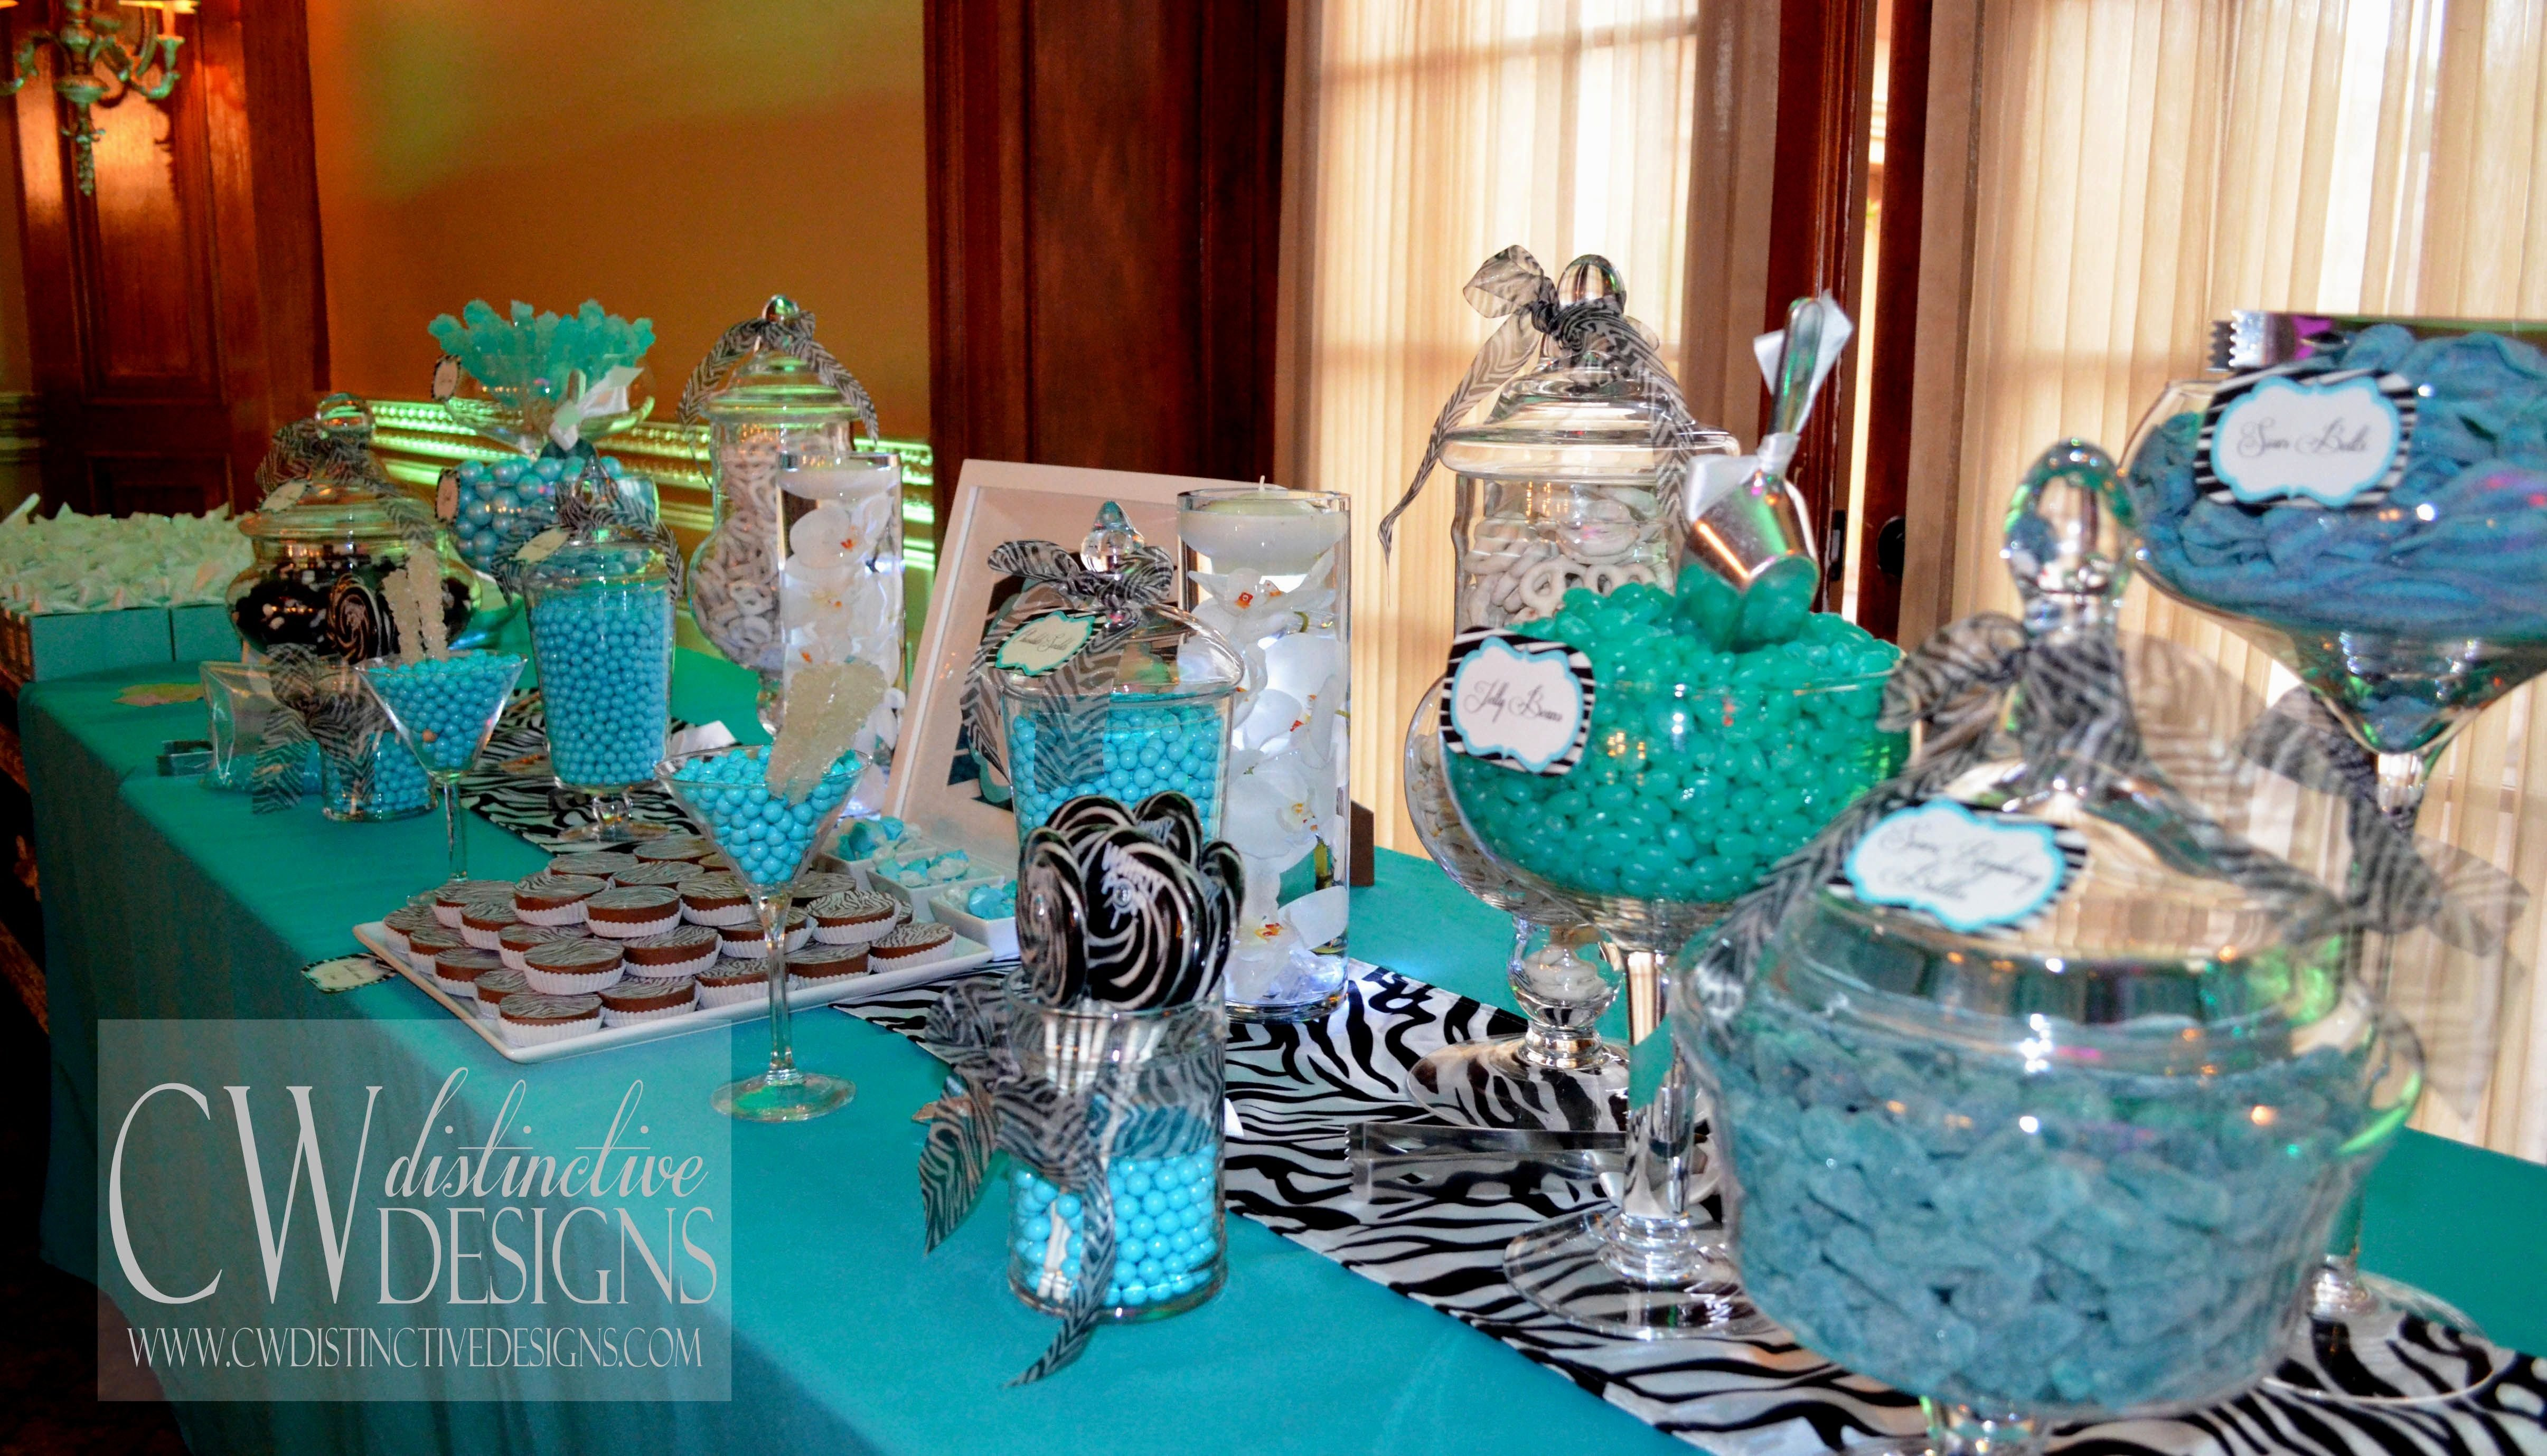 10 Unique Candy Buffet Ideas For Baby Shower baby shower candy table ideas baby shower candy buffet ideas 2020